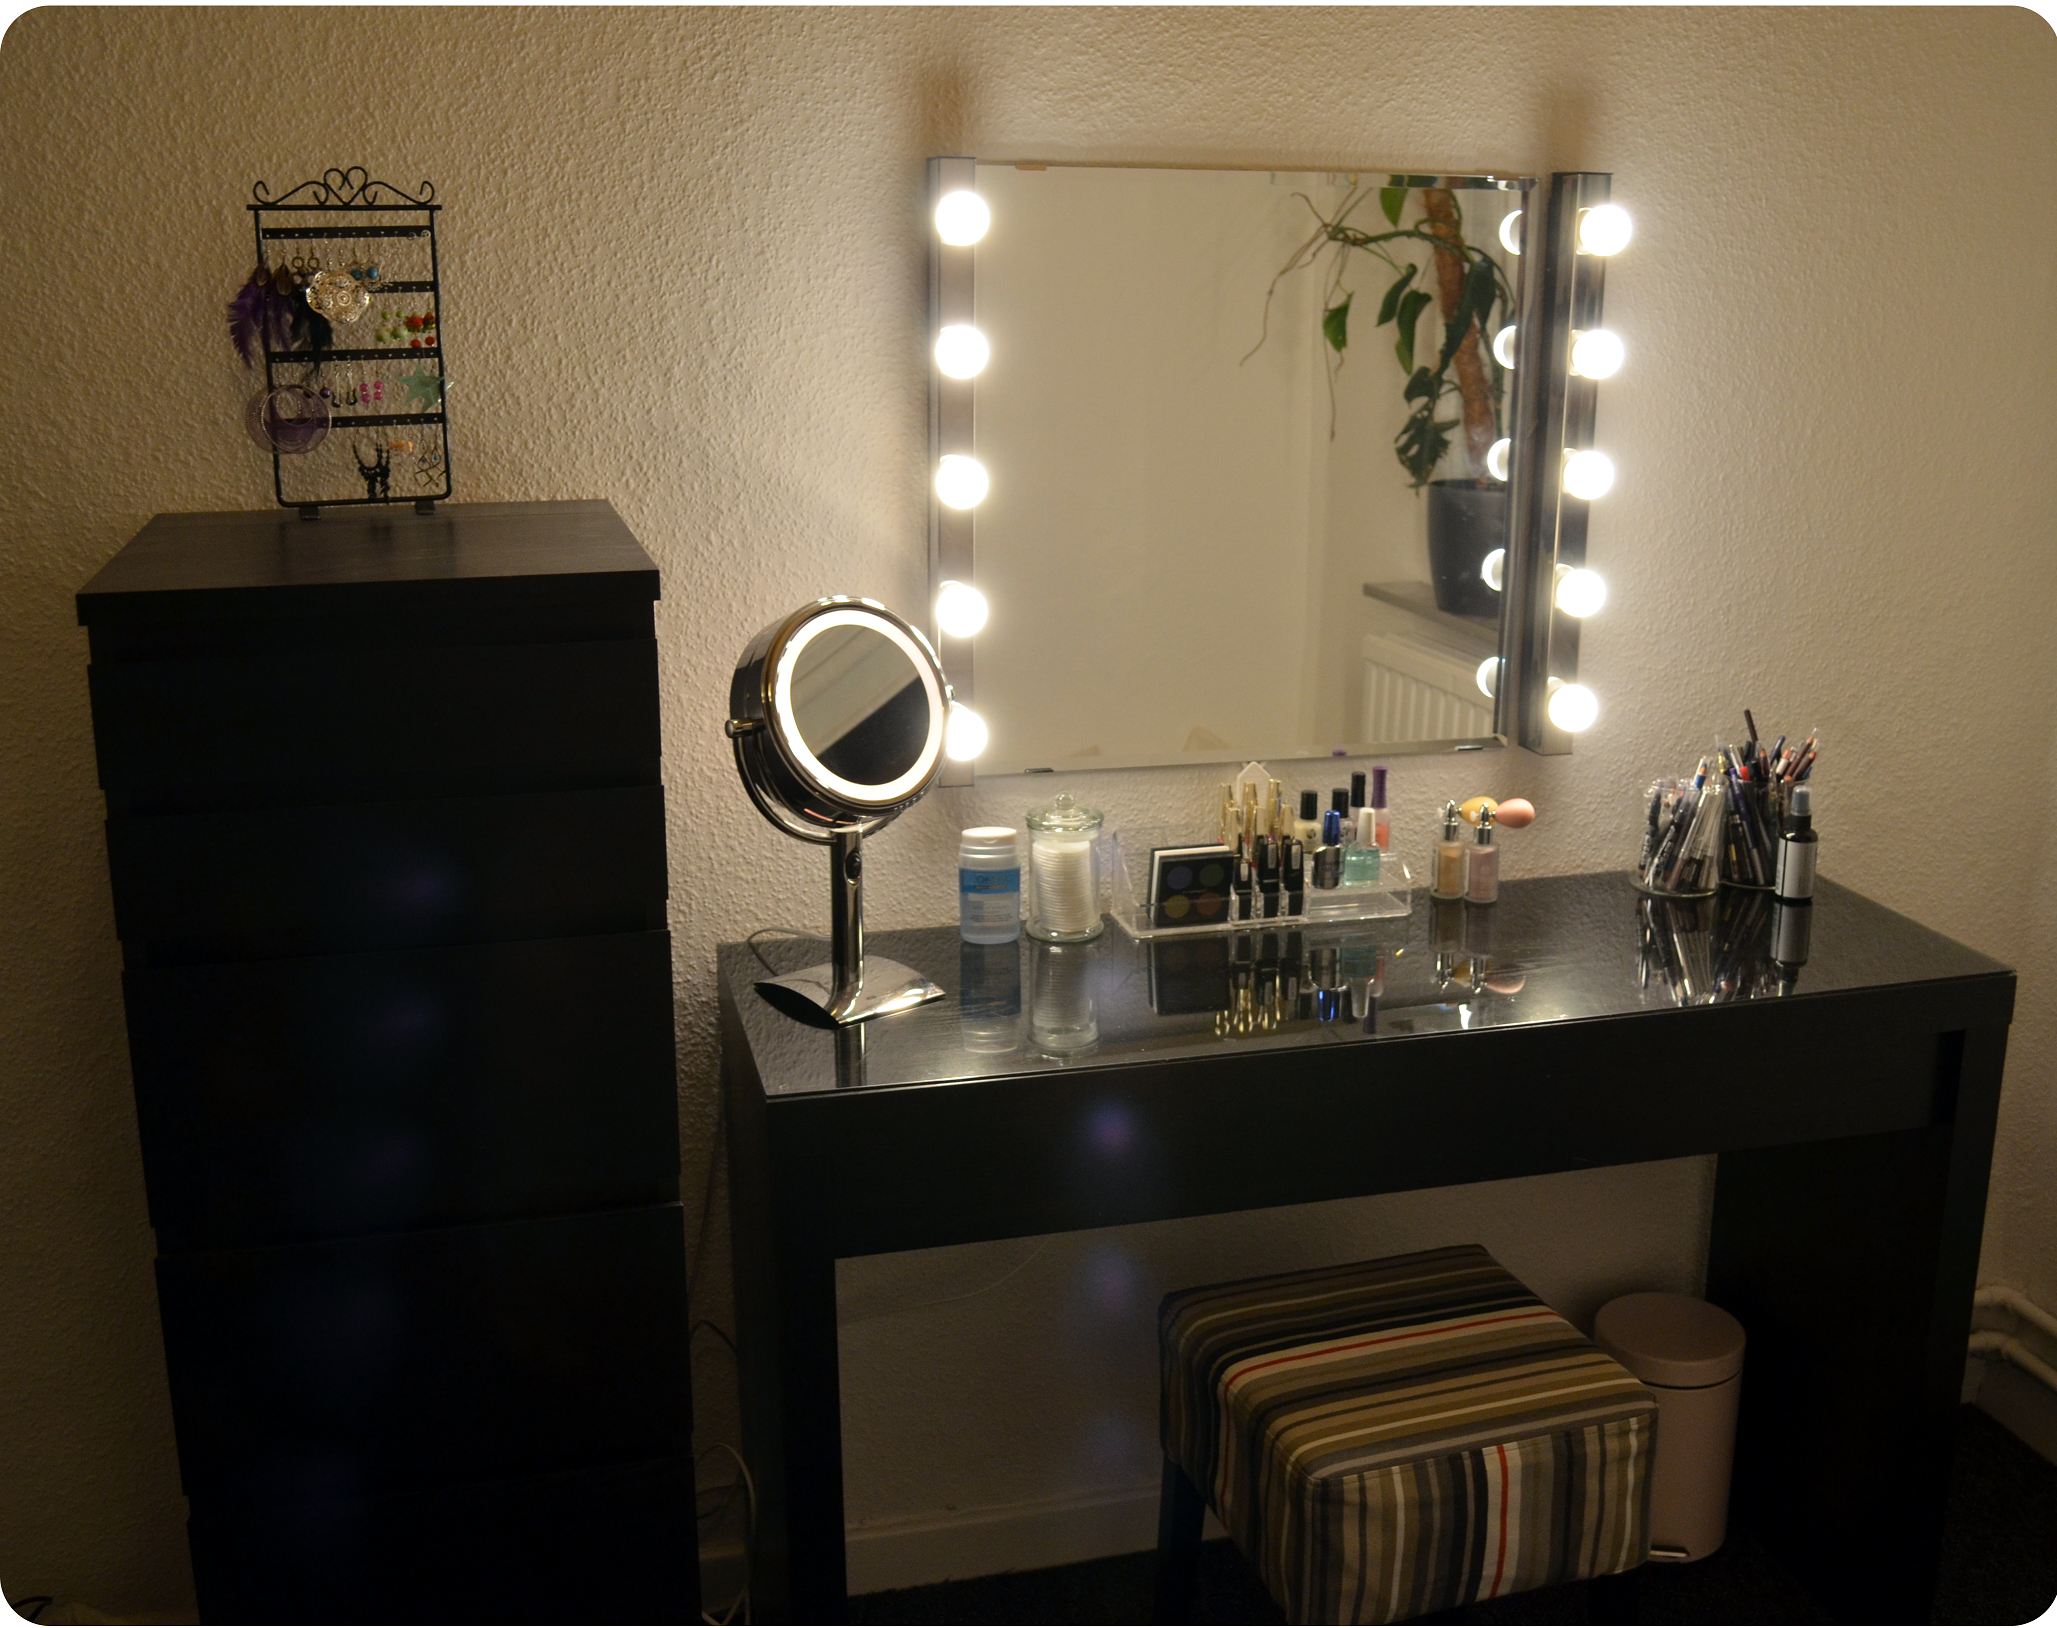 Vanity Mirror With Lights And Dresser : Ikea Malm Vanity, Ikea Kolja Mirror, Ikea Musik Vanity lights, Ikea Malm Dresser, OBH Nordica ...